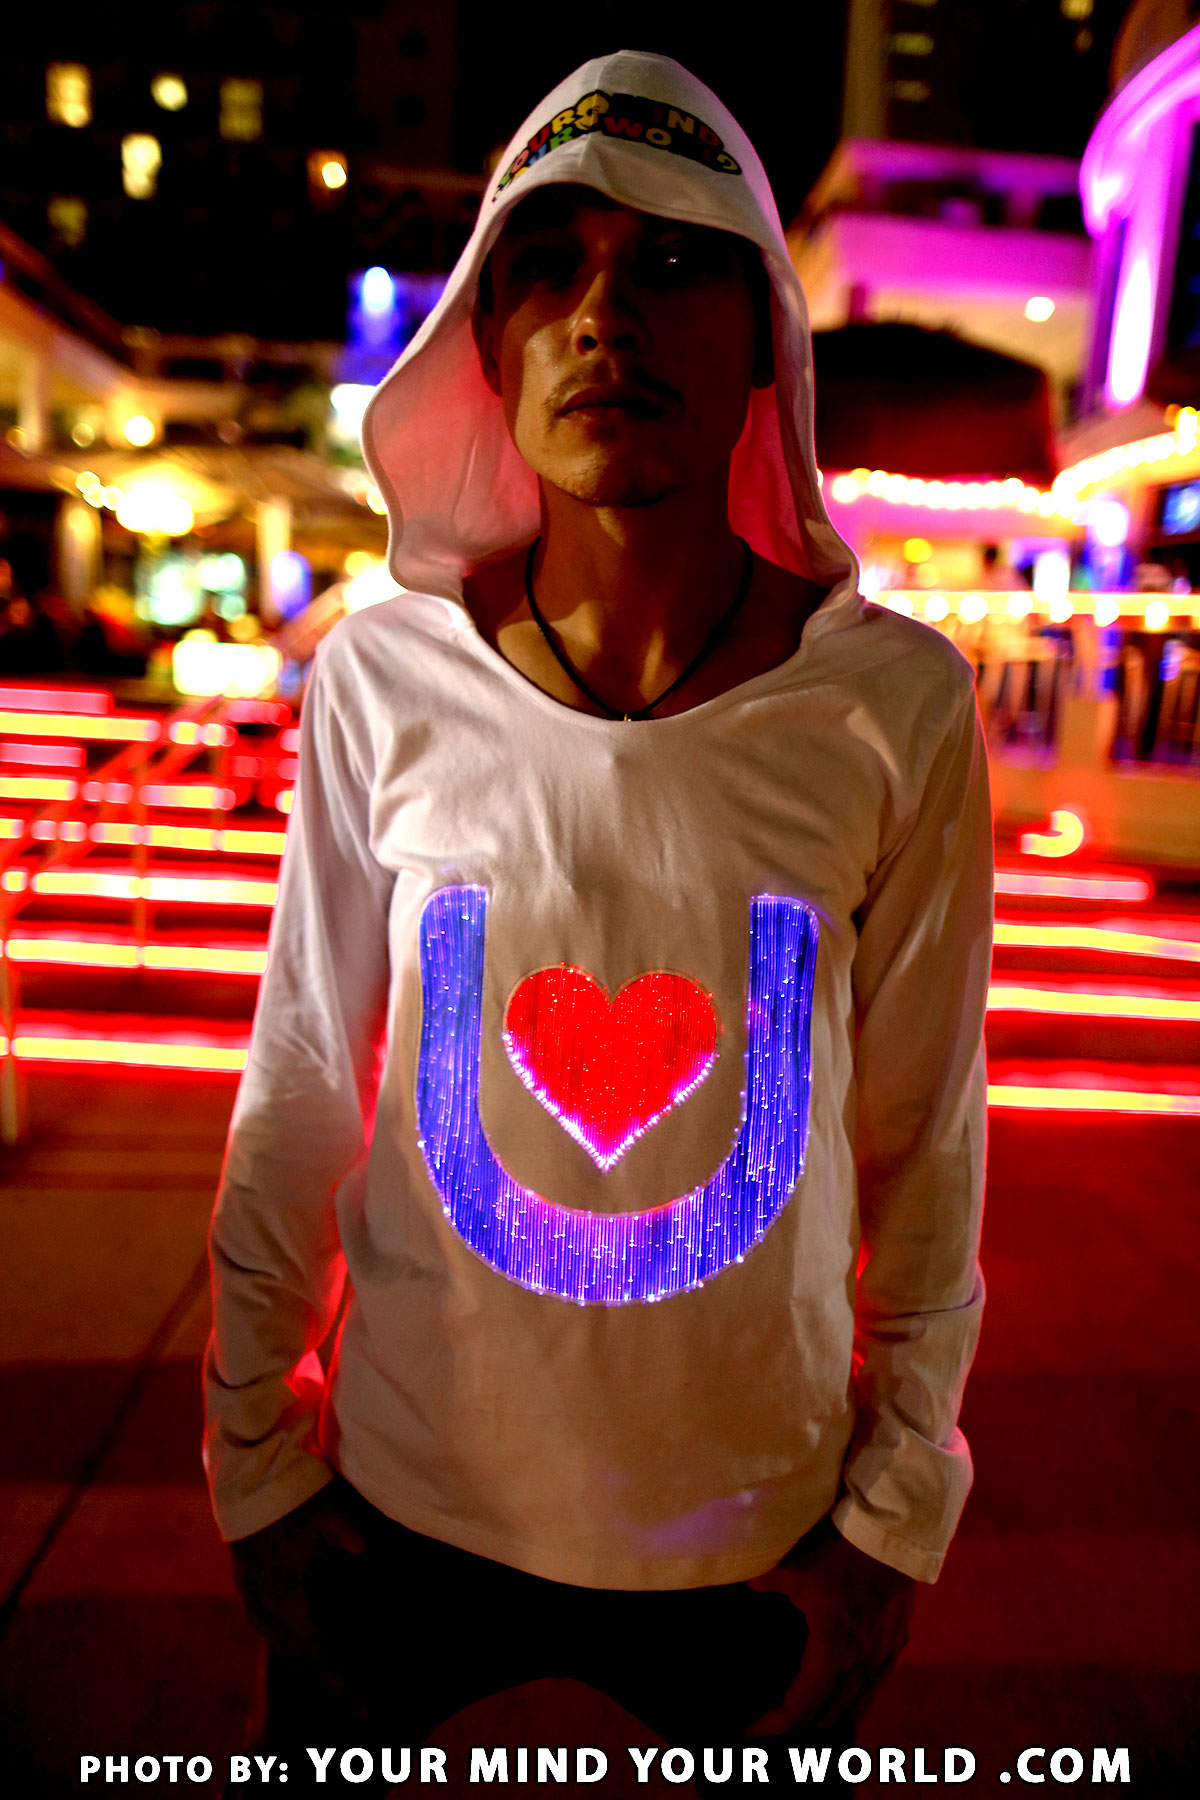 Rave Gear Best Outfits Light Up Sweatshirt For Boys - YMYW